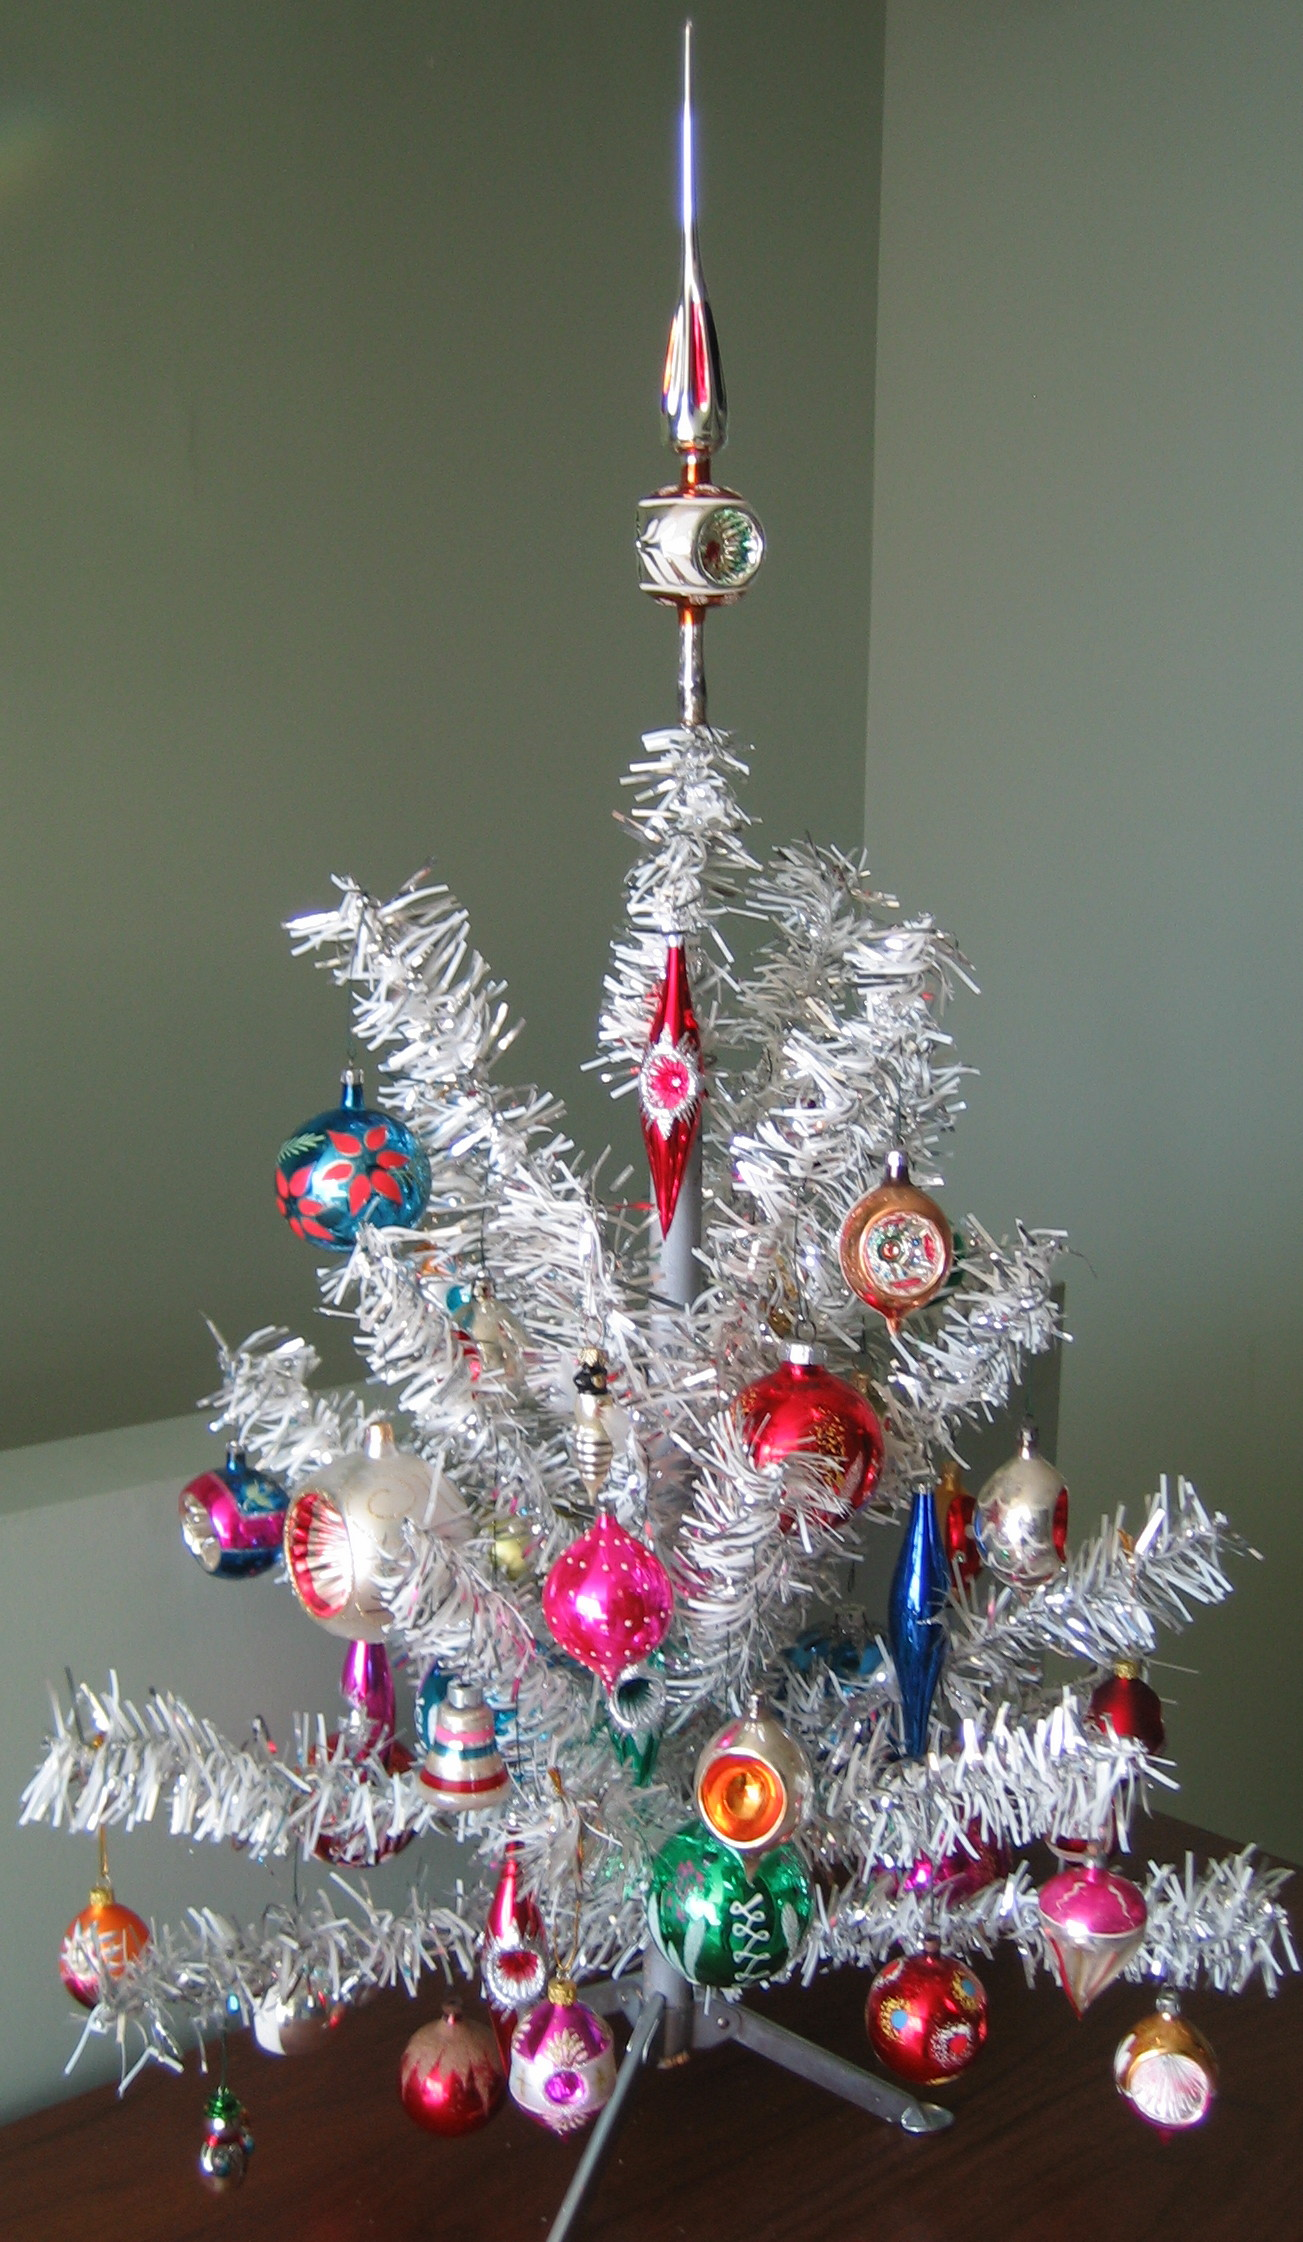 FileAluminum Christmas Tree2jpg Wikipedia